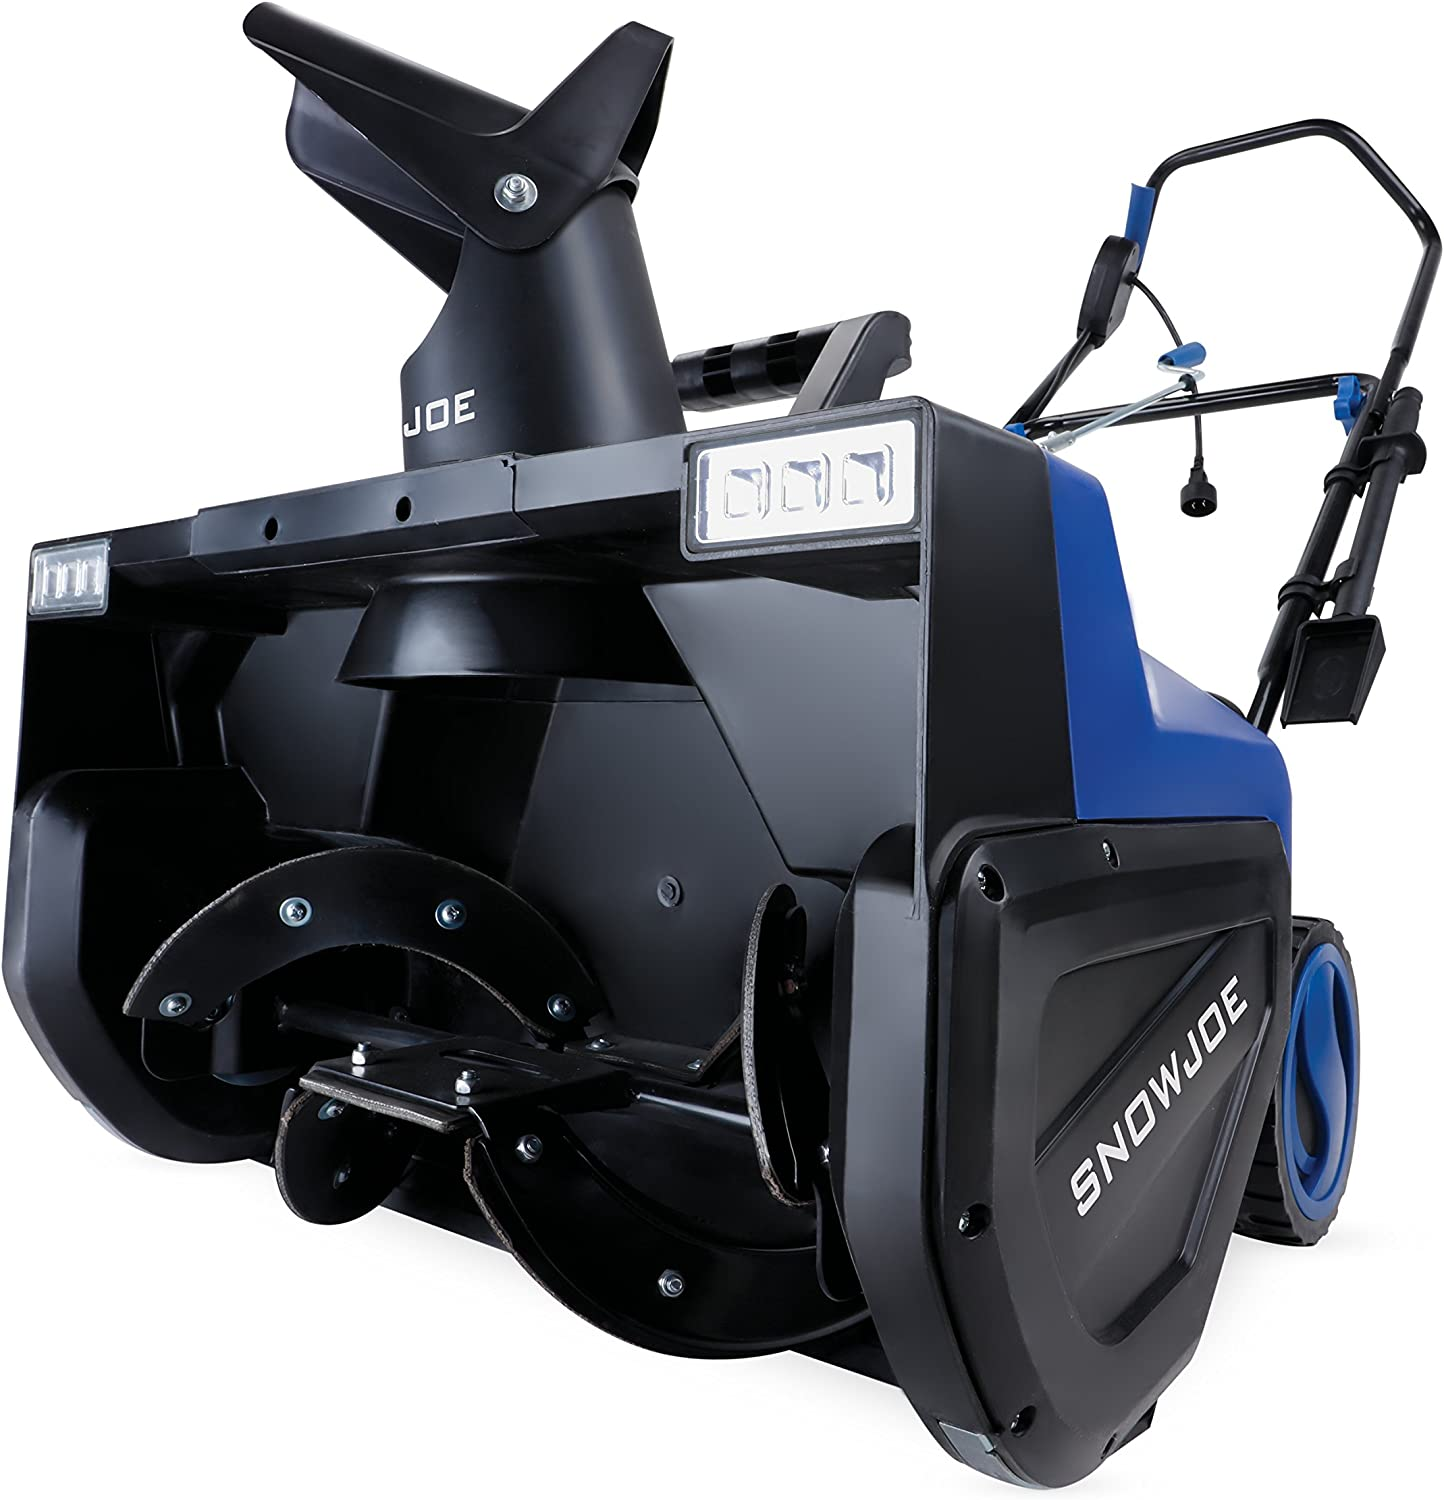 Snow Joe SJ627E 22-Inch 15-Amp Electric Snow Thrower w Dual LED Lights